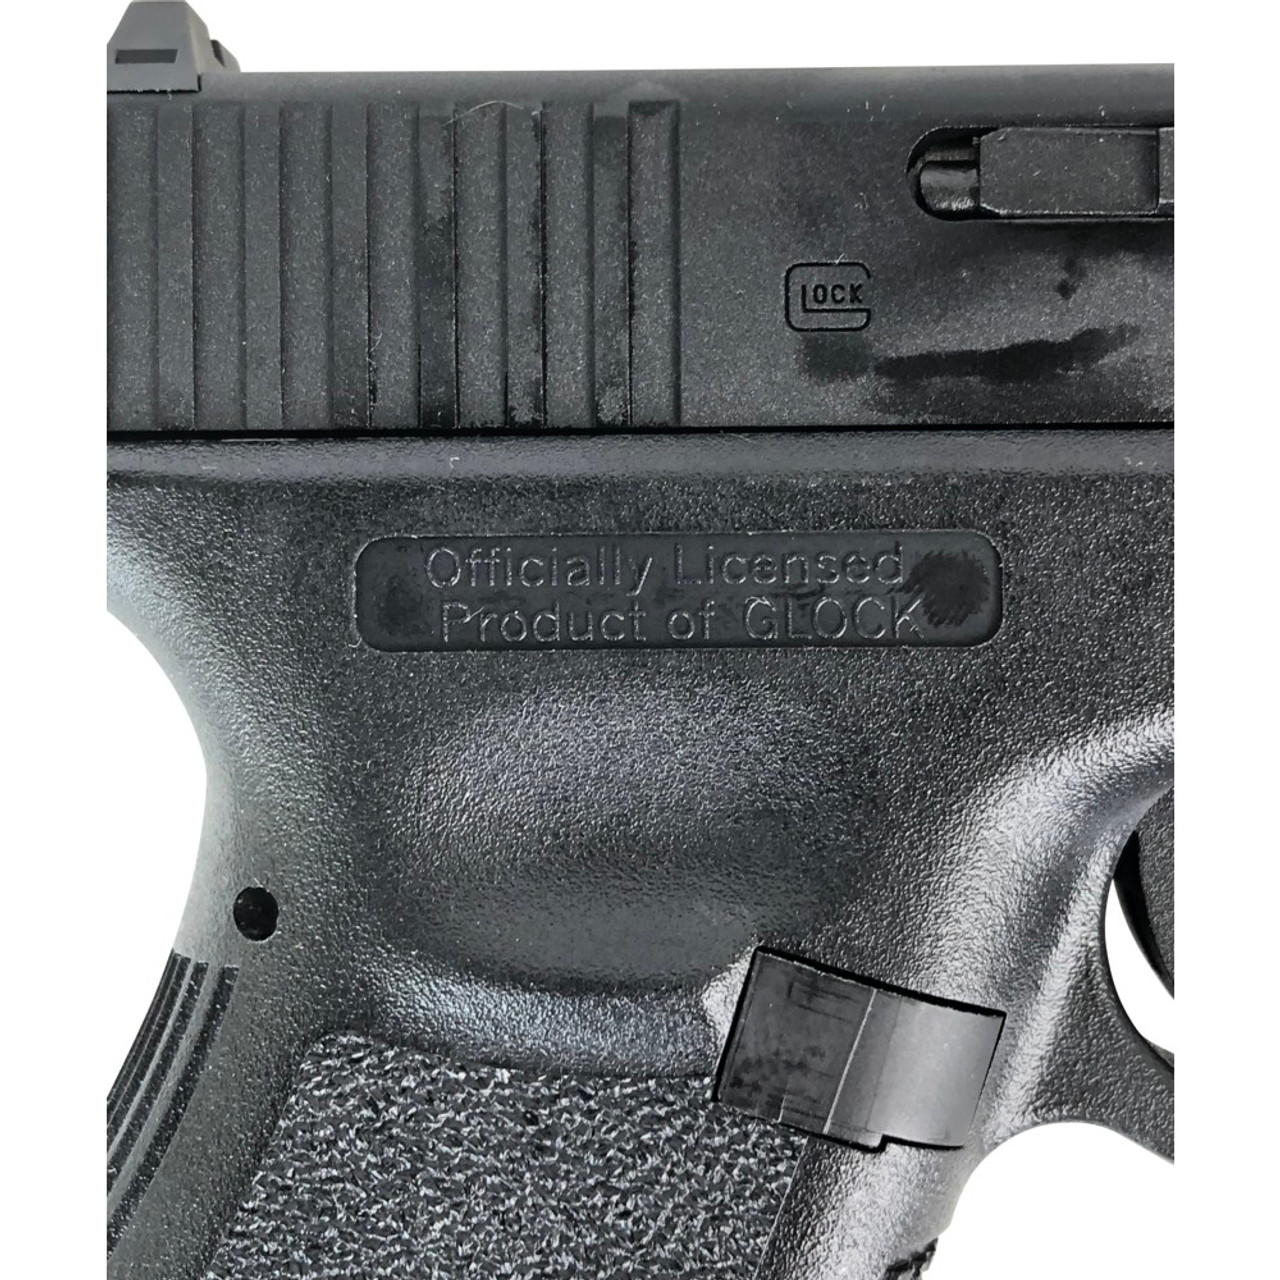 Try These Umarex Licensed Airsoft Glock 19 Gen 3 C02 Non